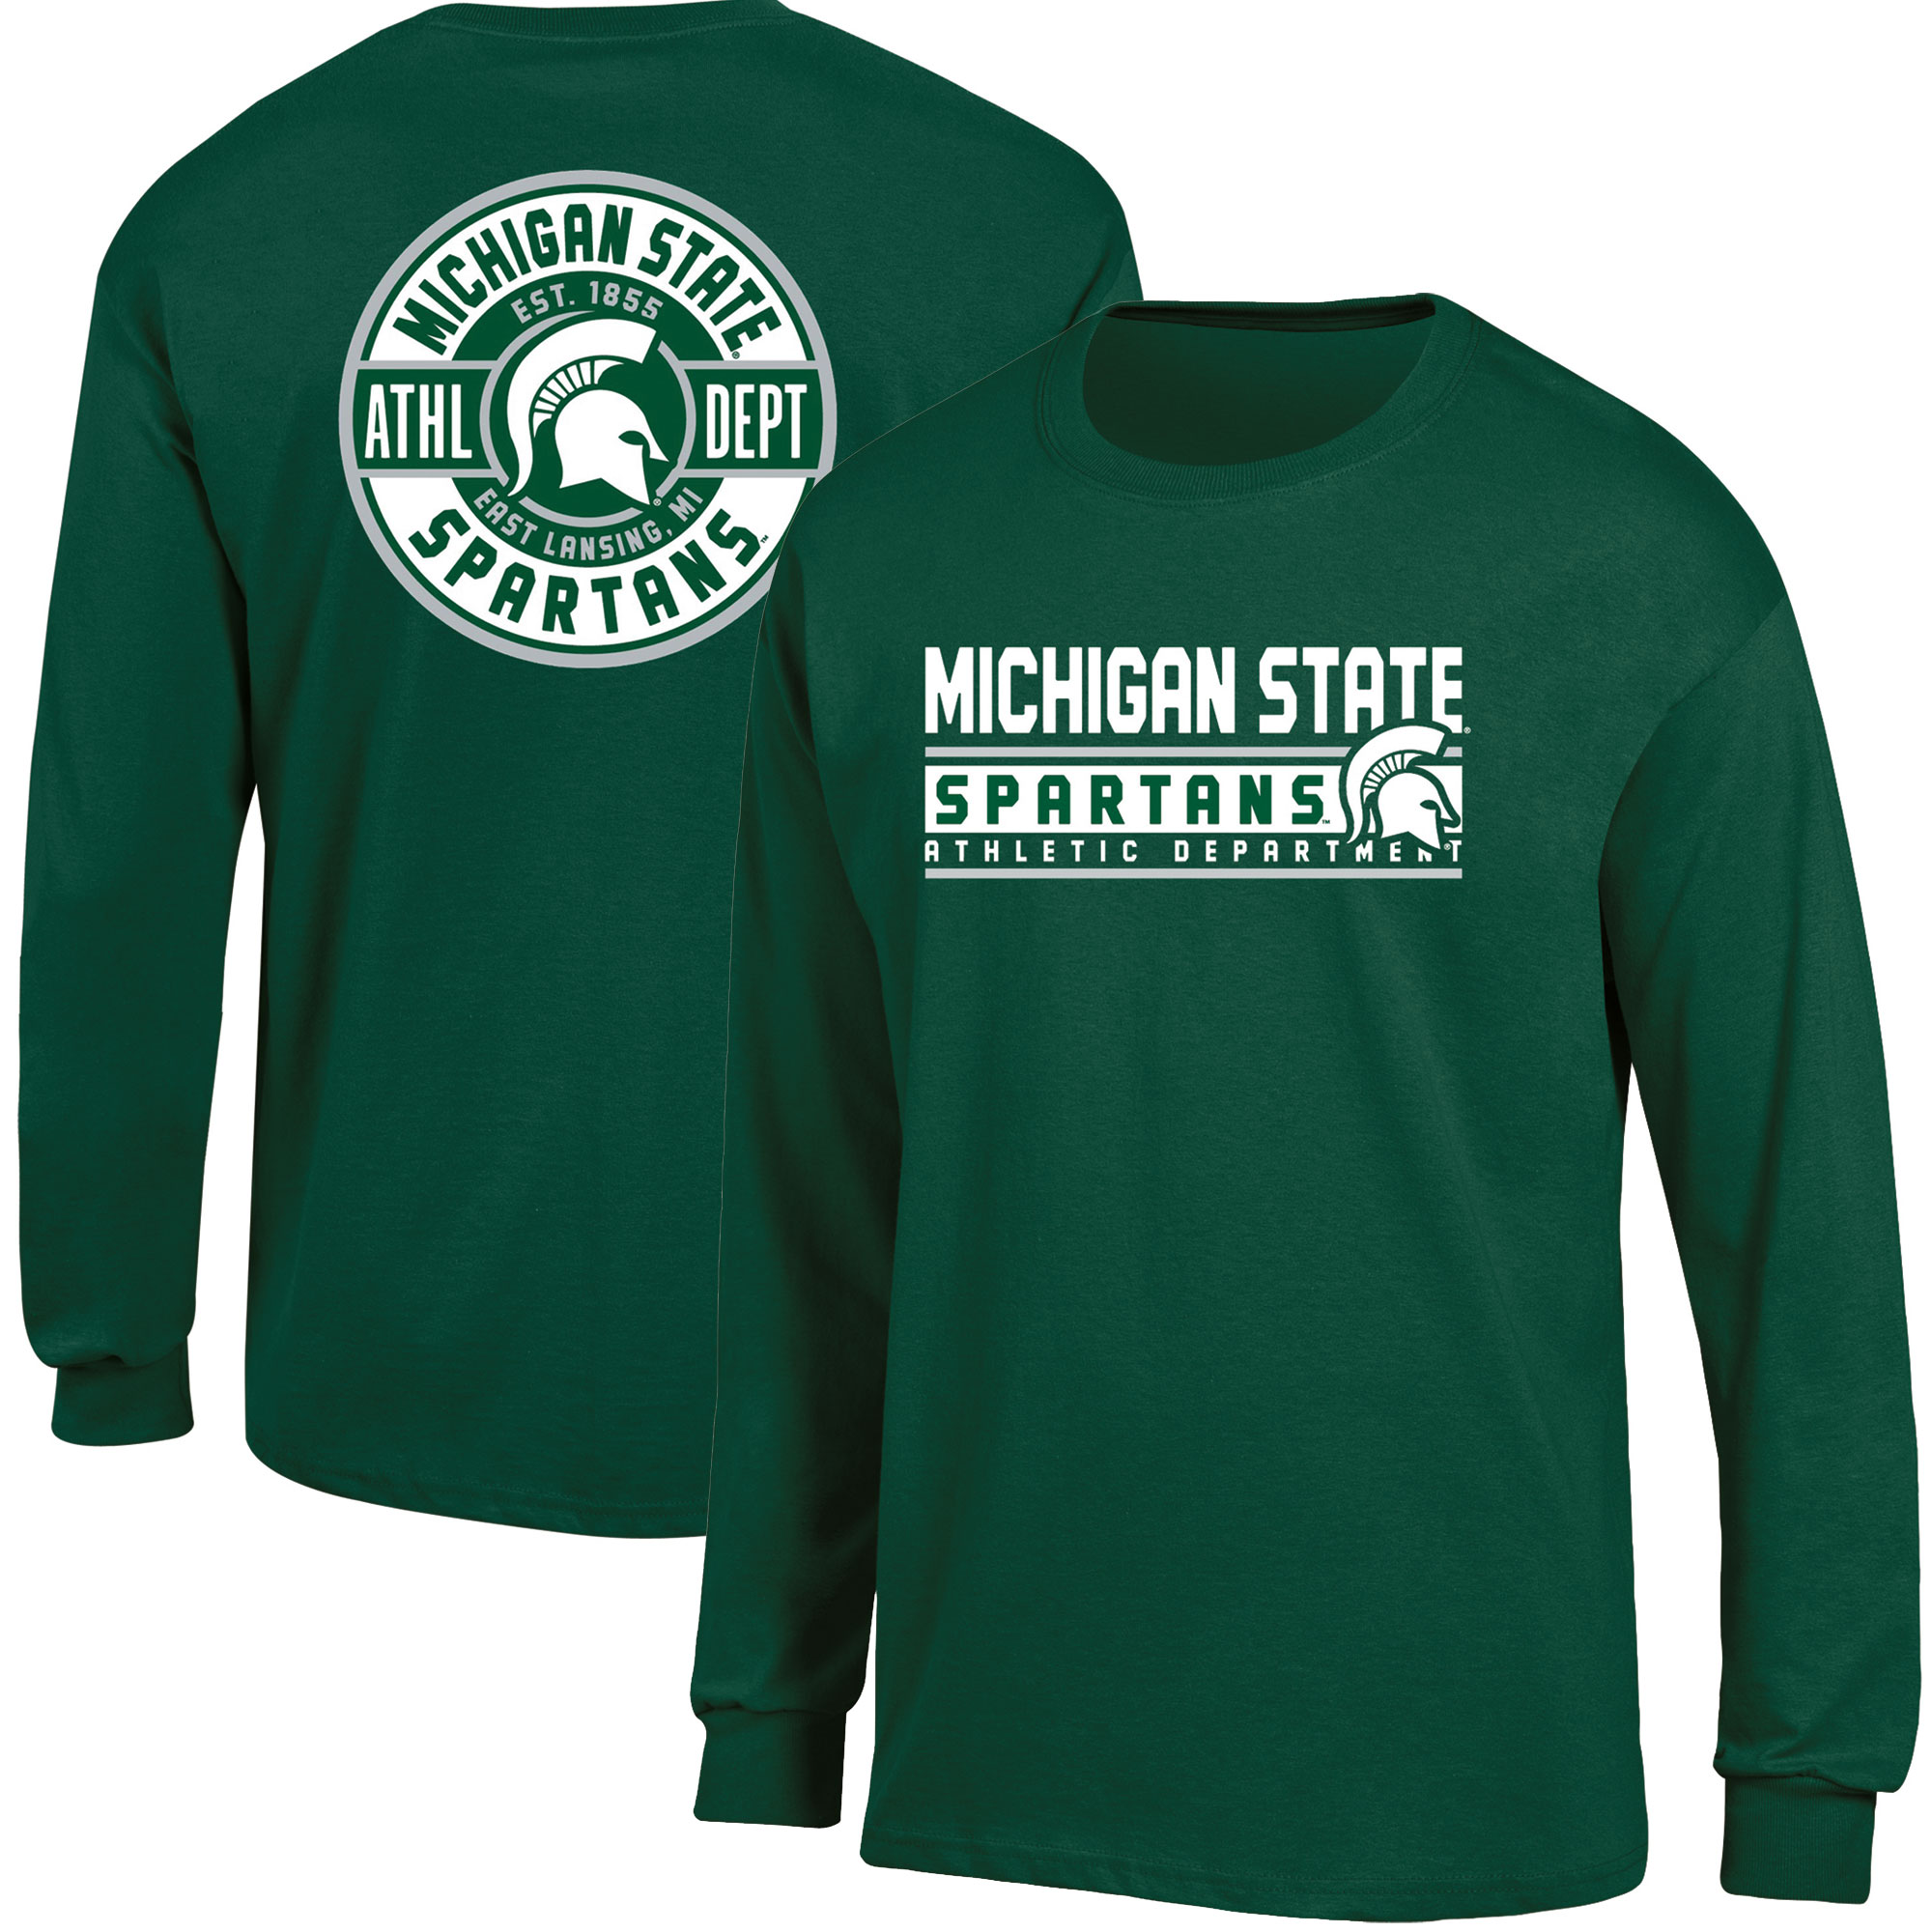 Men's Russell Green Michigan State Spartans Back Hit Long Sleeve T-Shirt